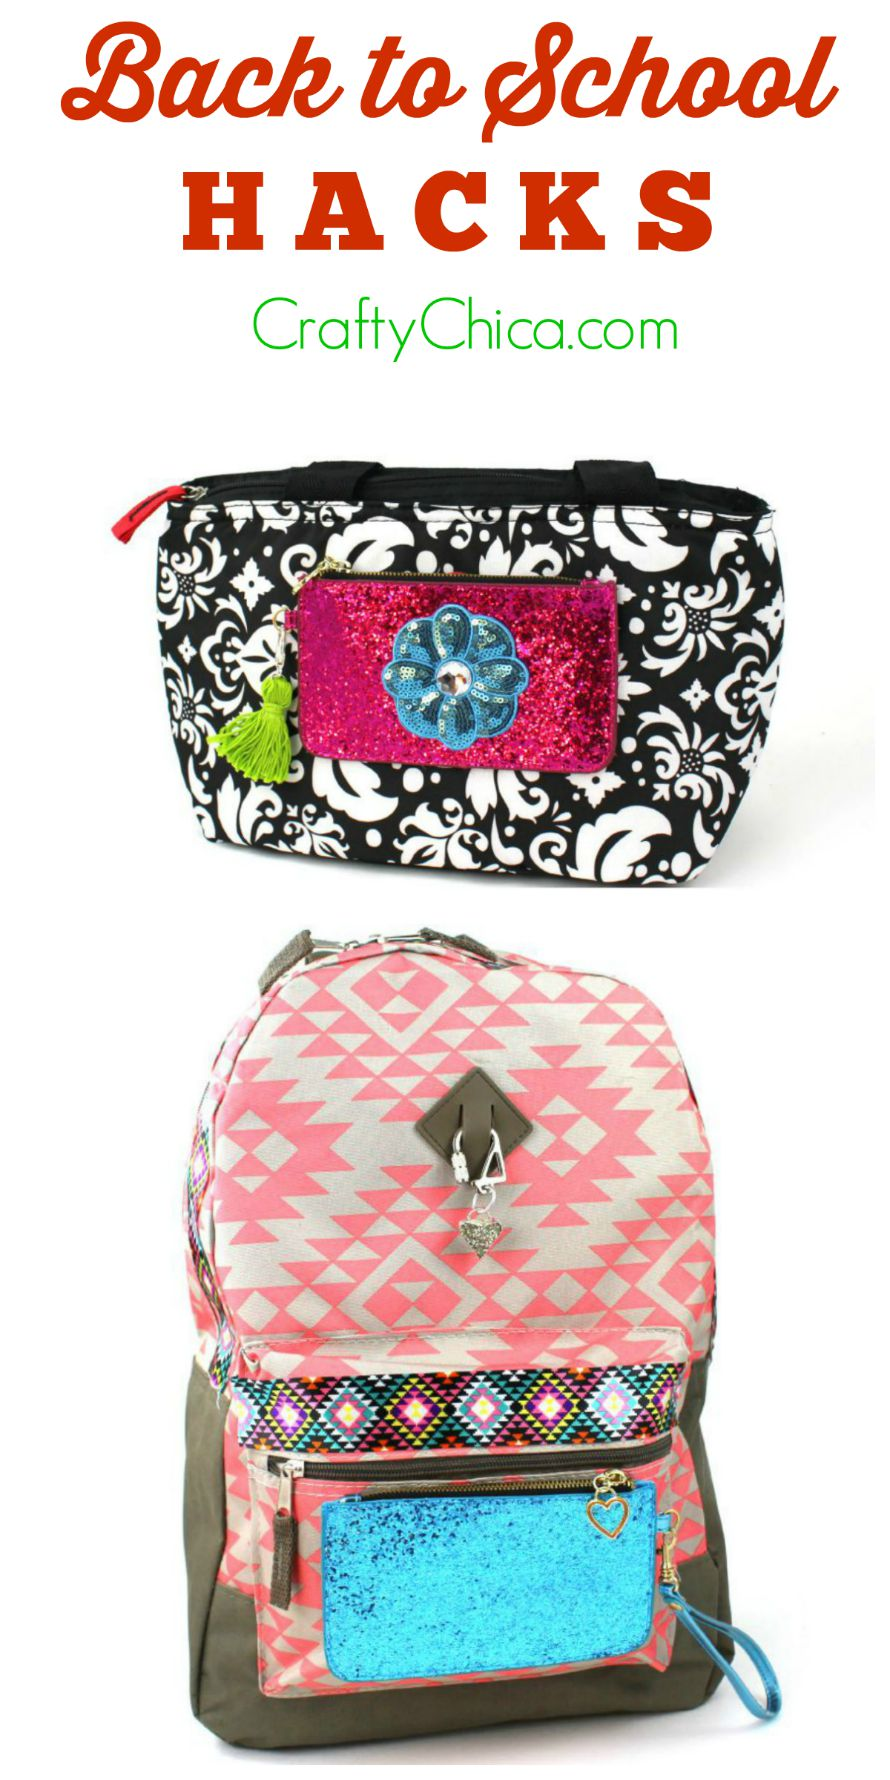 Backpacks hacks for back to school: Use hot glue and fabric tape to add a coin purse and trim! CraftyChica.com.